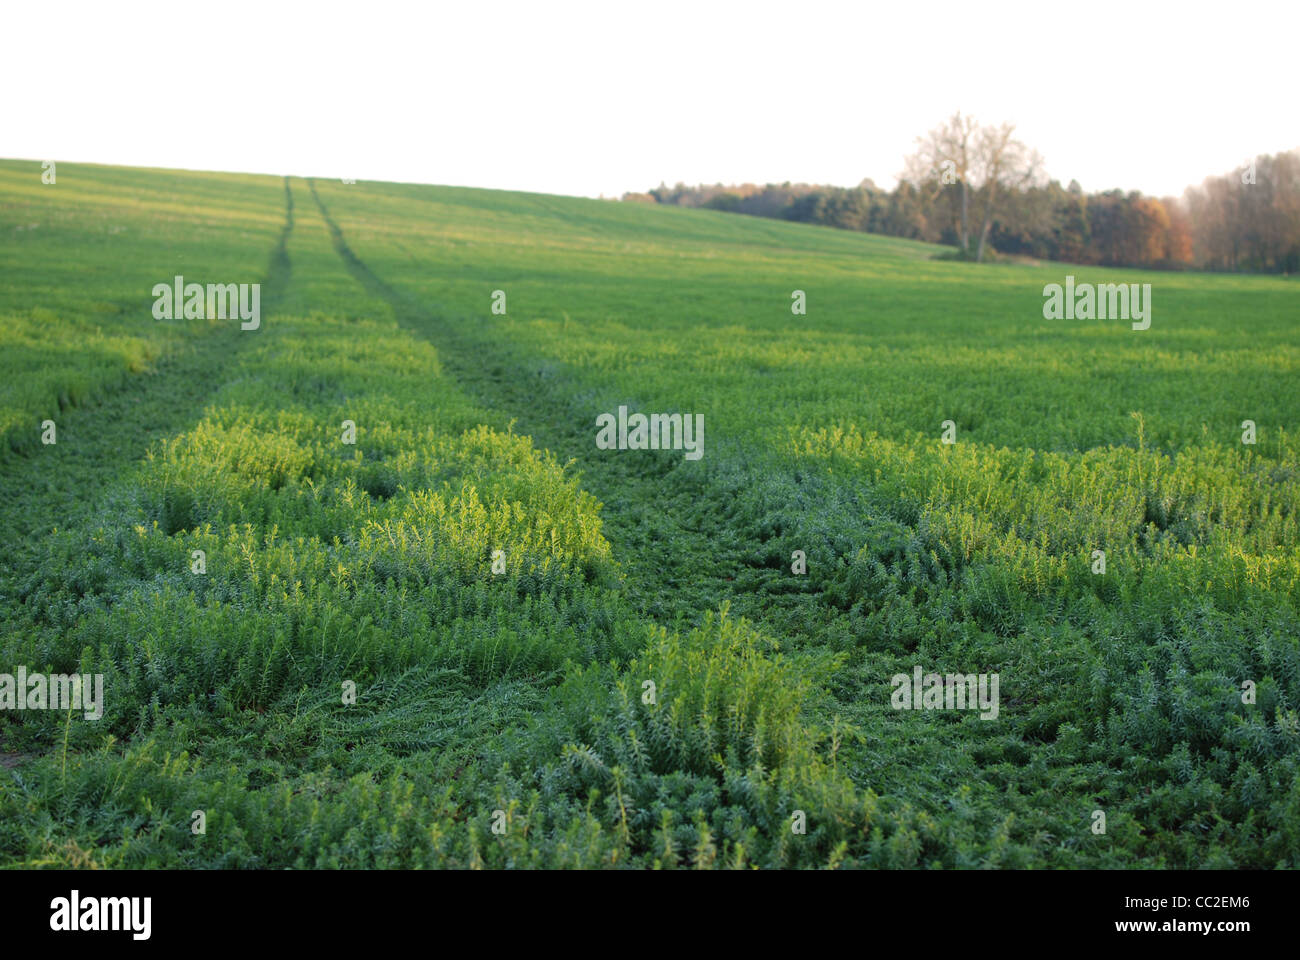 Track Marks High Resolution Stock Photography and Images - Alamy